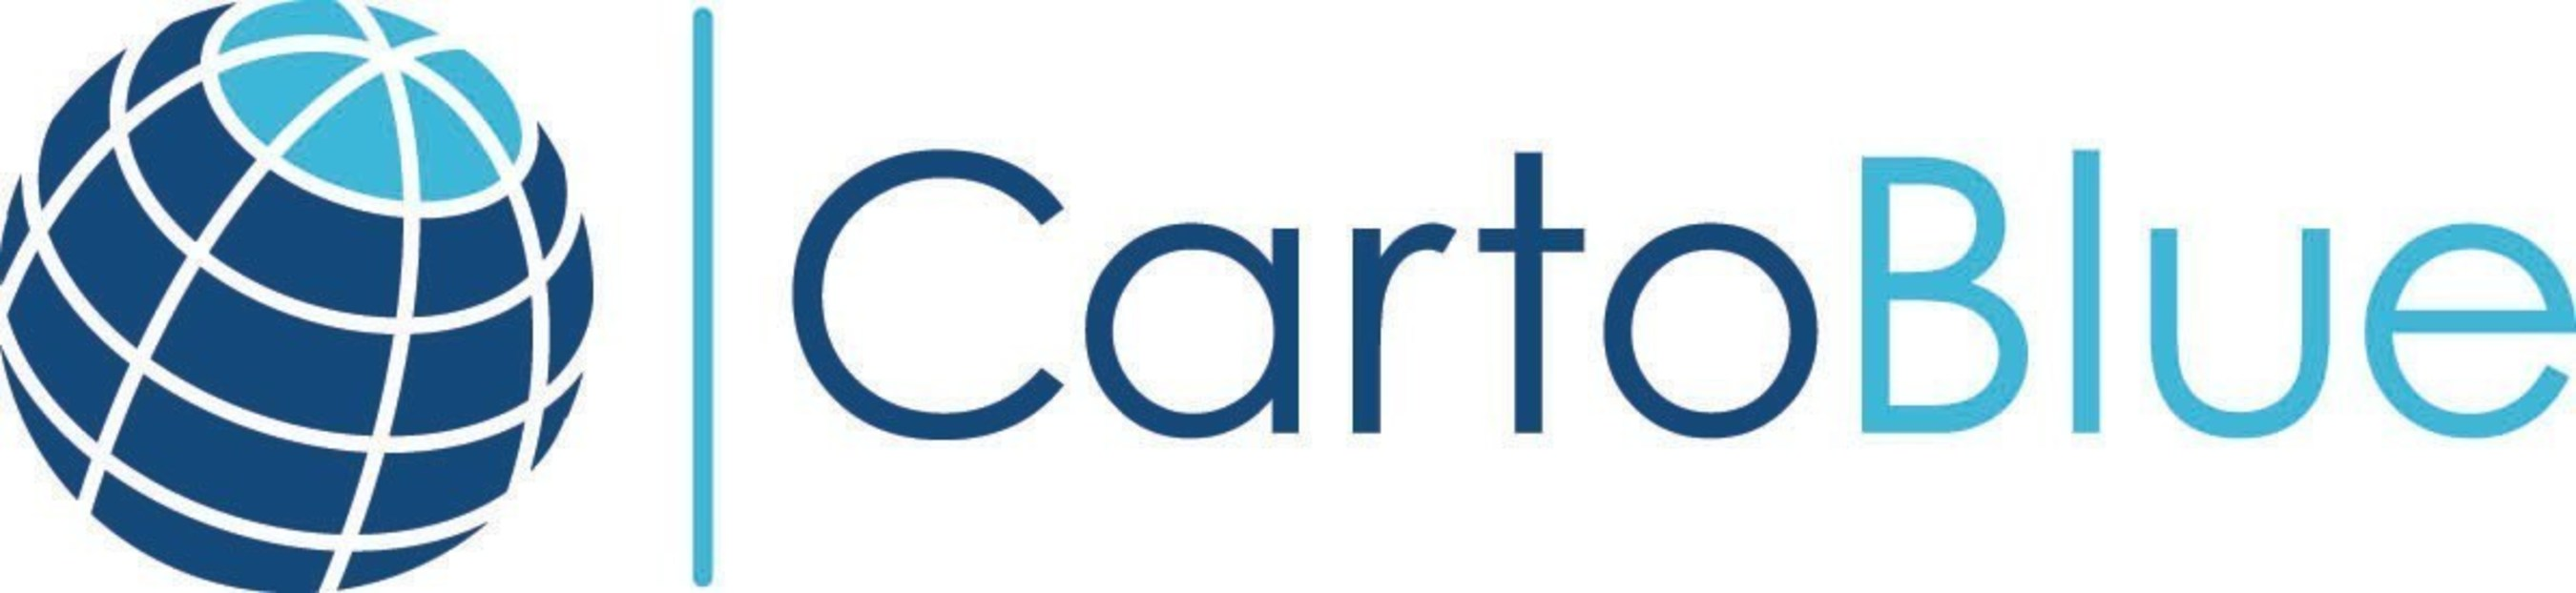 CartoBlue Launches New Virtual Reality Product CartoVision to be Used with Google Cardboard